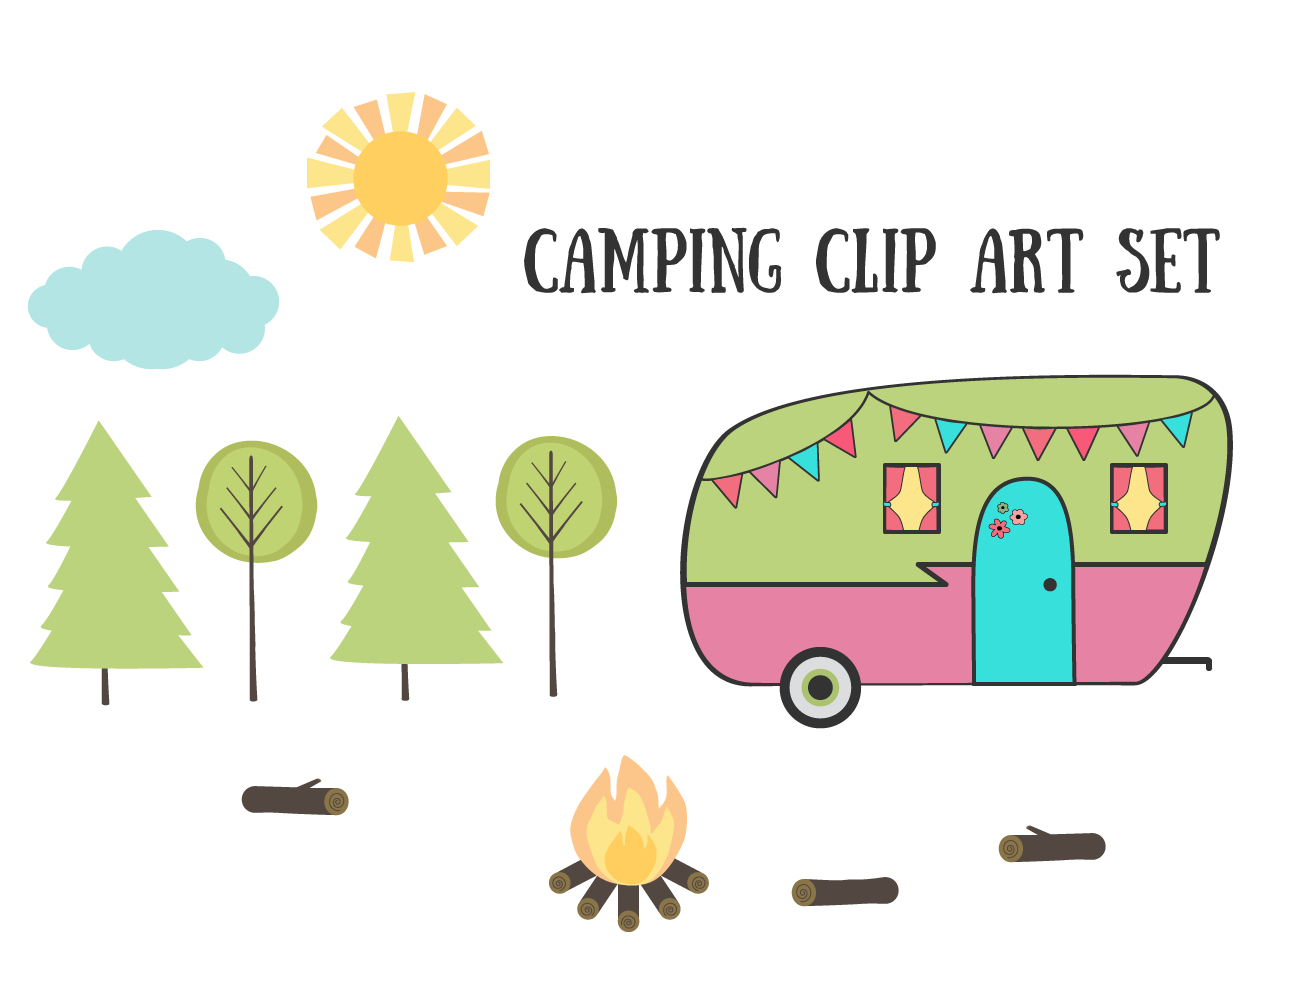 Rv camper clipart picture black and white library Free Camping Cliparts, Download Free Clip Art, Free Clip Art on ... picture black and white library